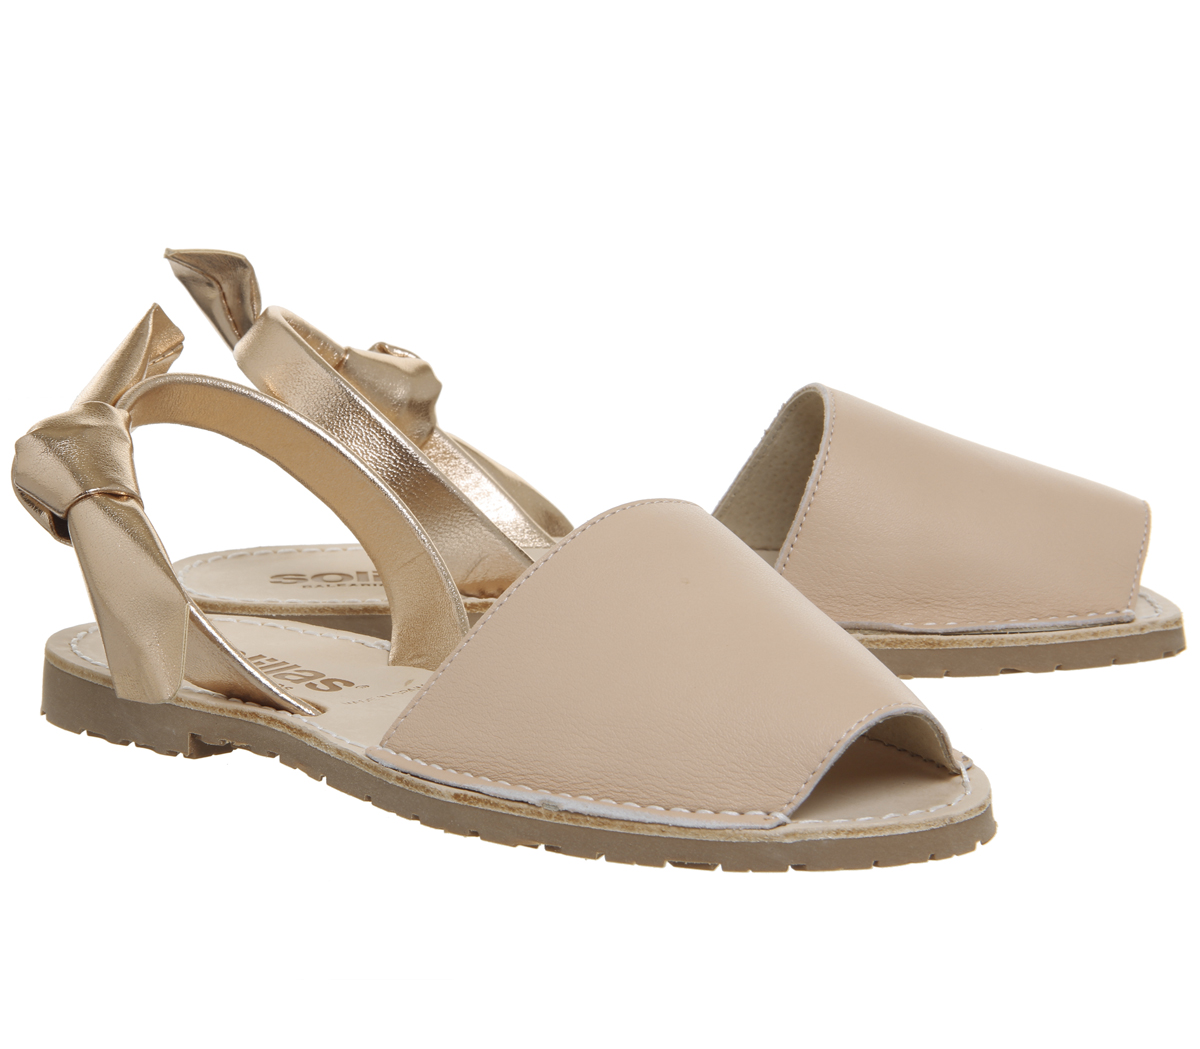 4112ade4656d Womens Solillas Solillas Bow Sandals Grey Rose Gold Sandals